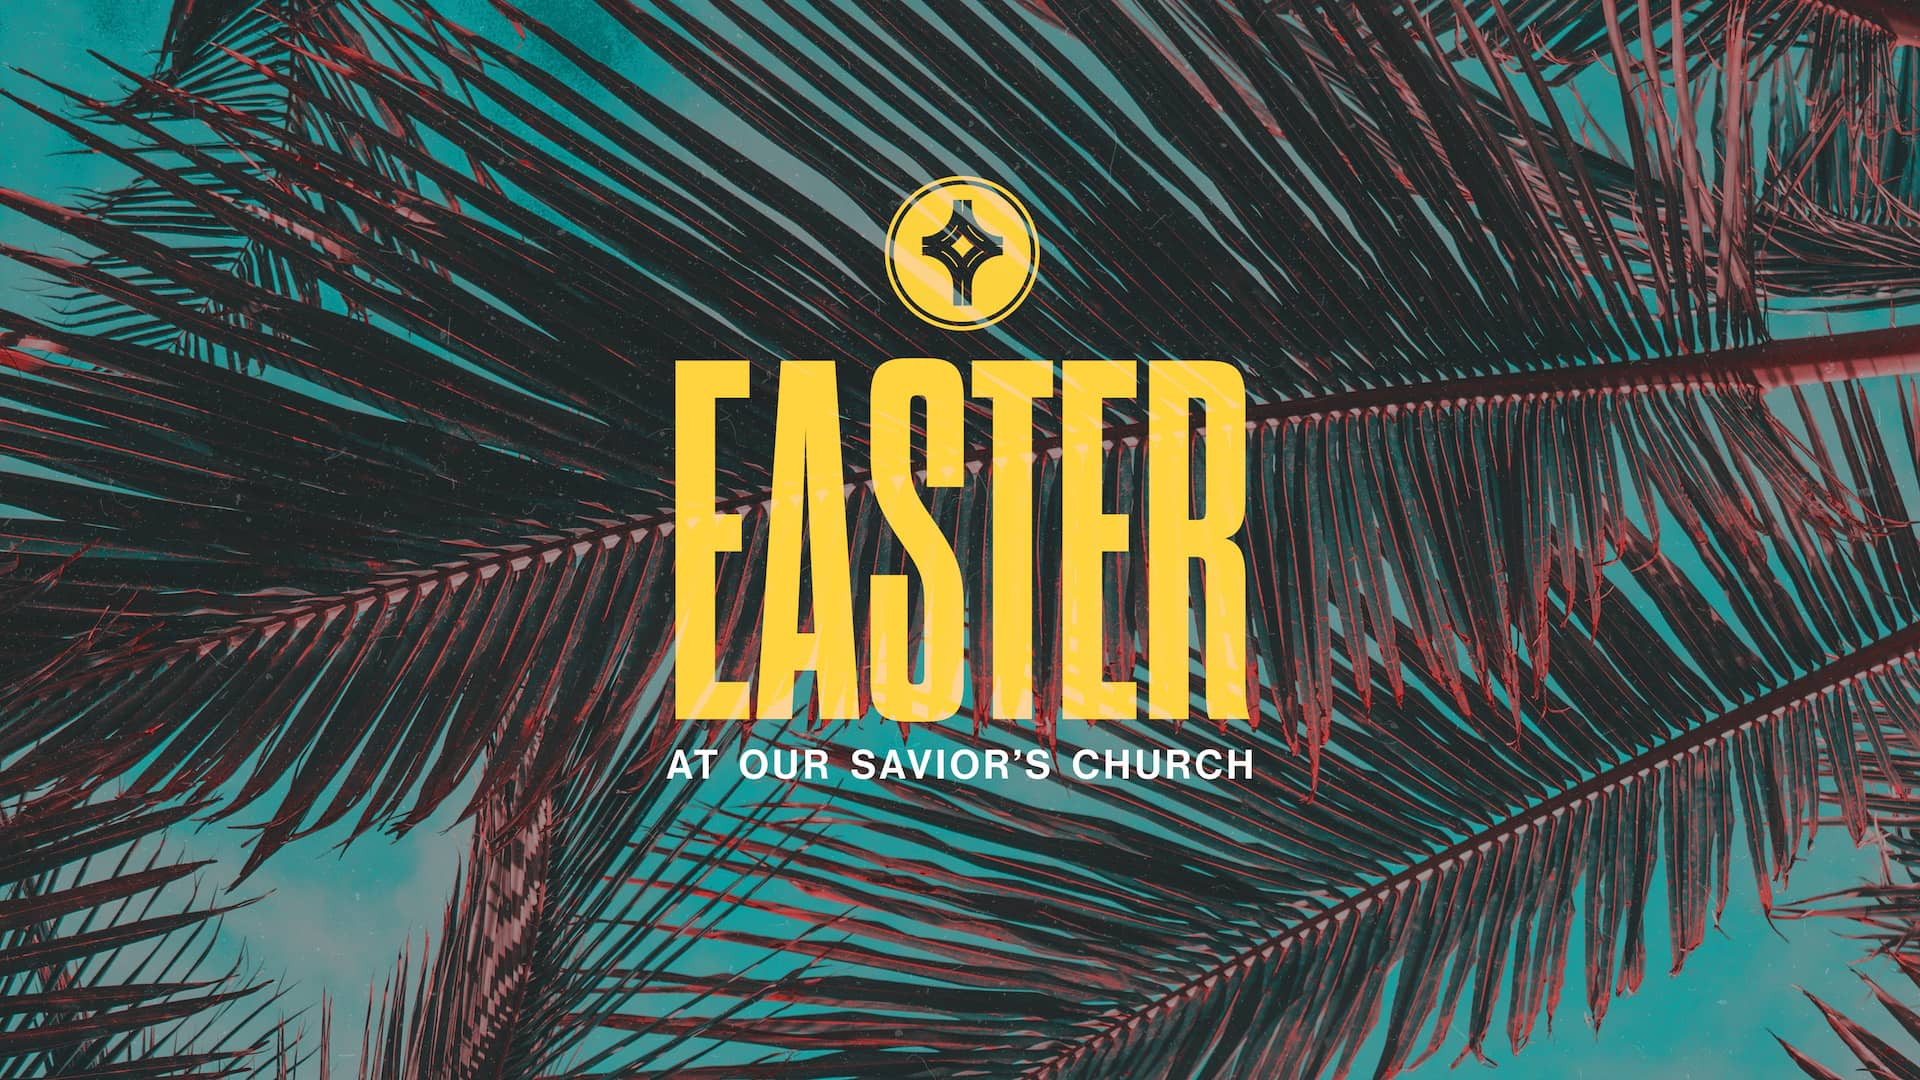 Easter at Our Savior's Church